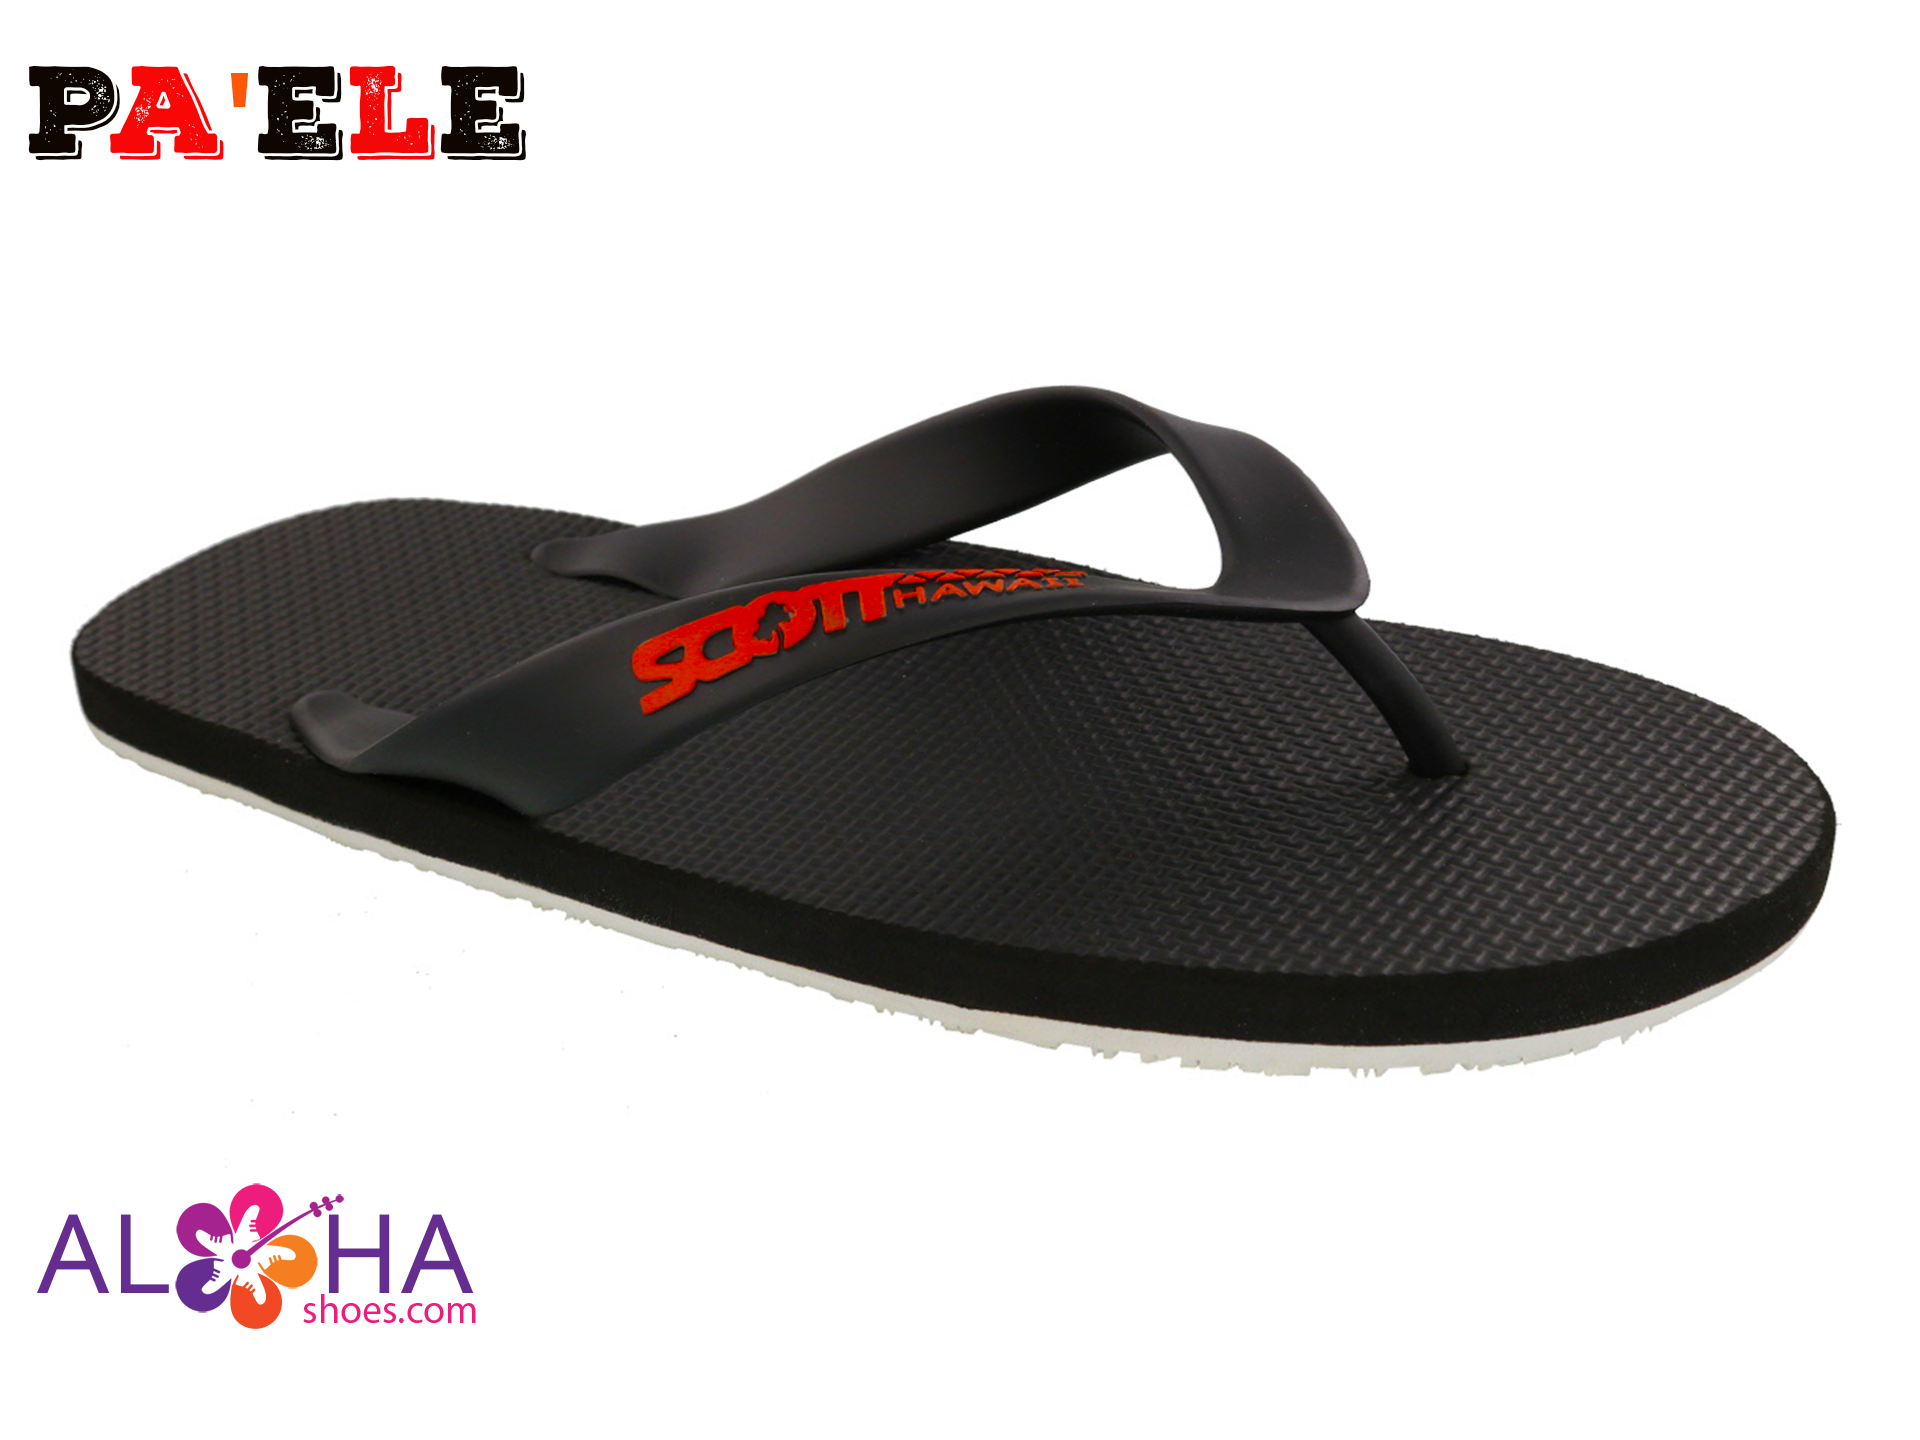 Scott Paele Rubber Flip Flops | Two Toned White Bottom Sandals - AlohaShoes.com